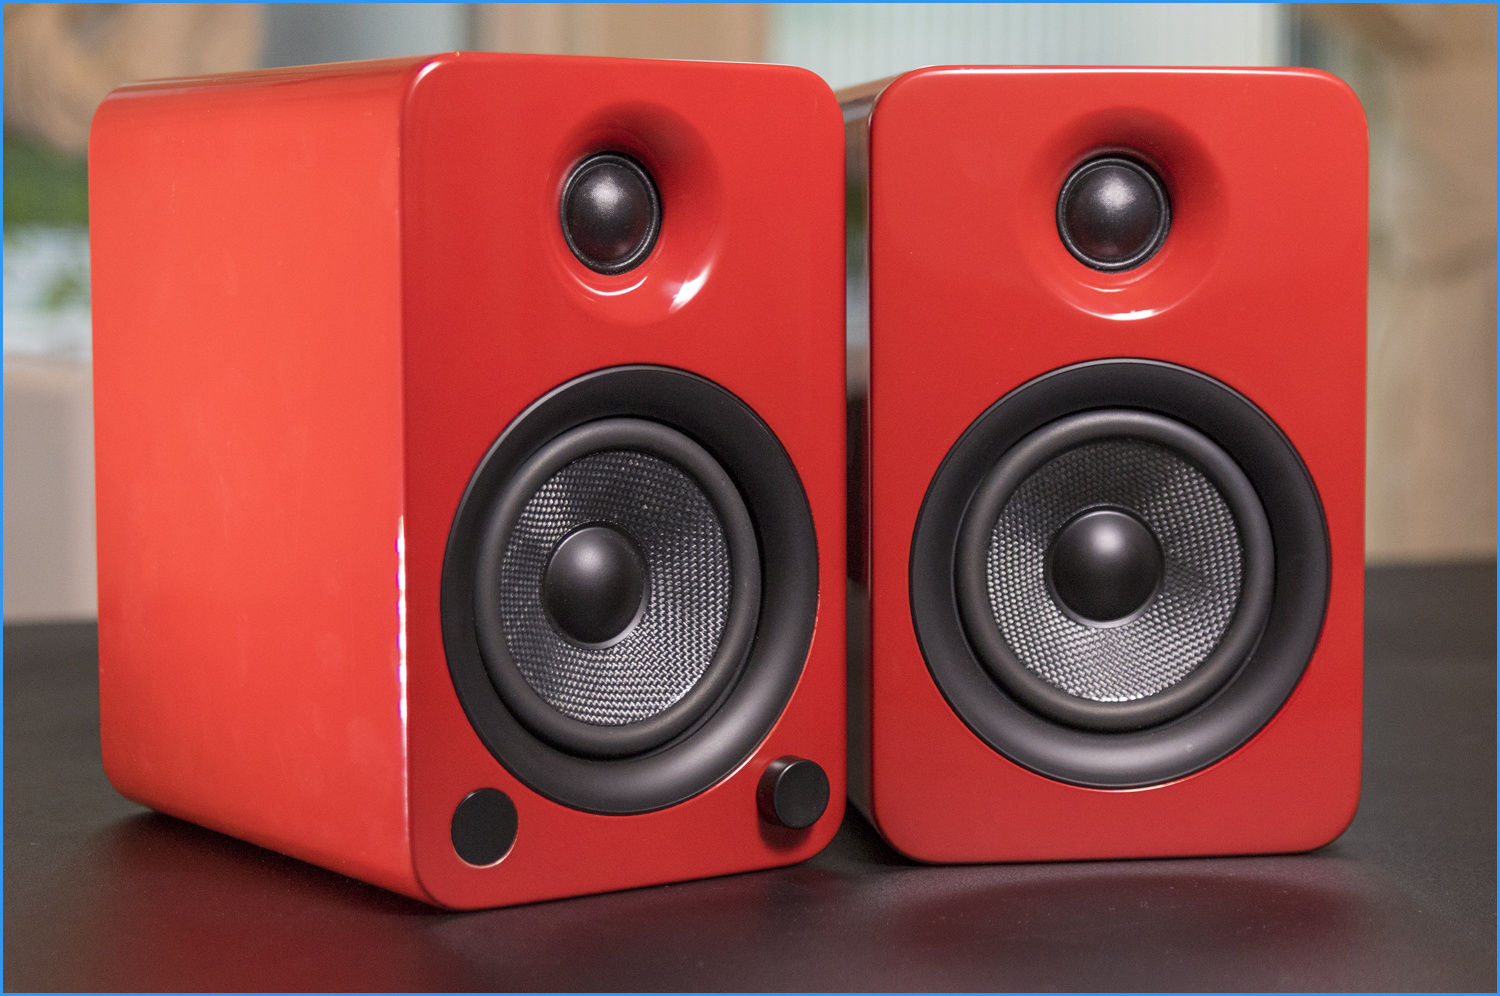 Active Speakers Combine The Power And Quality Of Passive Connected To An Amplifier In A Smaller Combined Package Making Them Perfect For Small